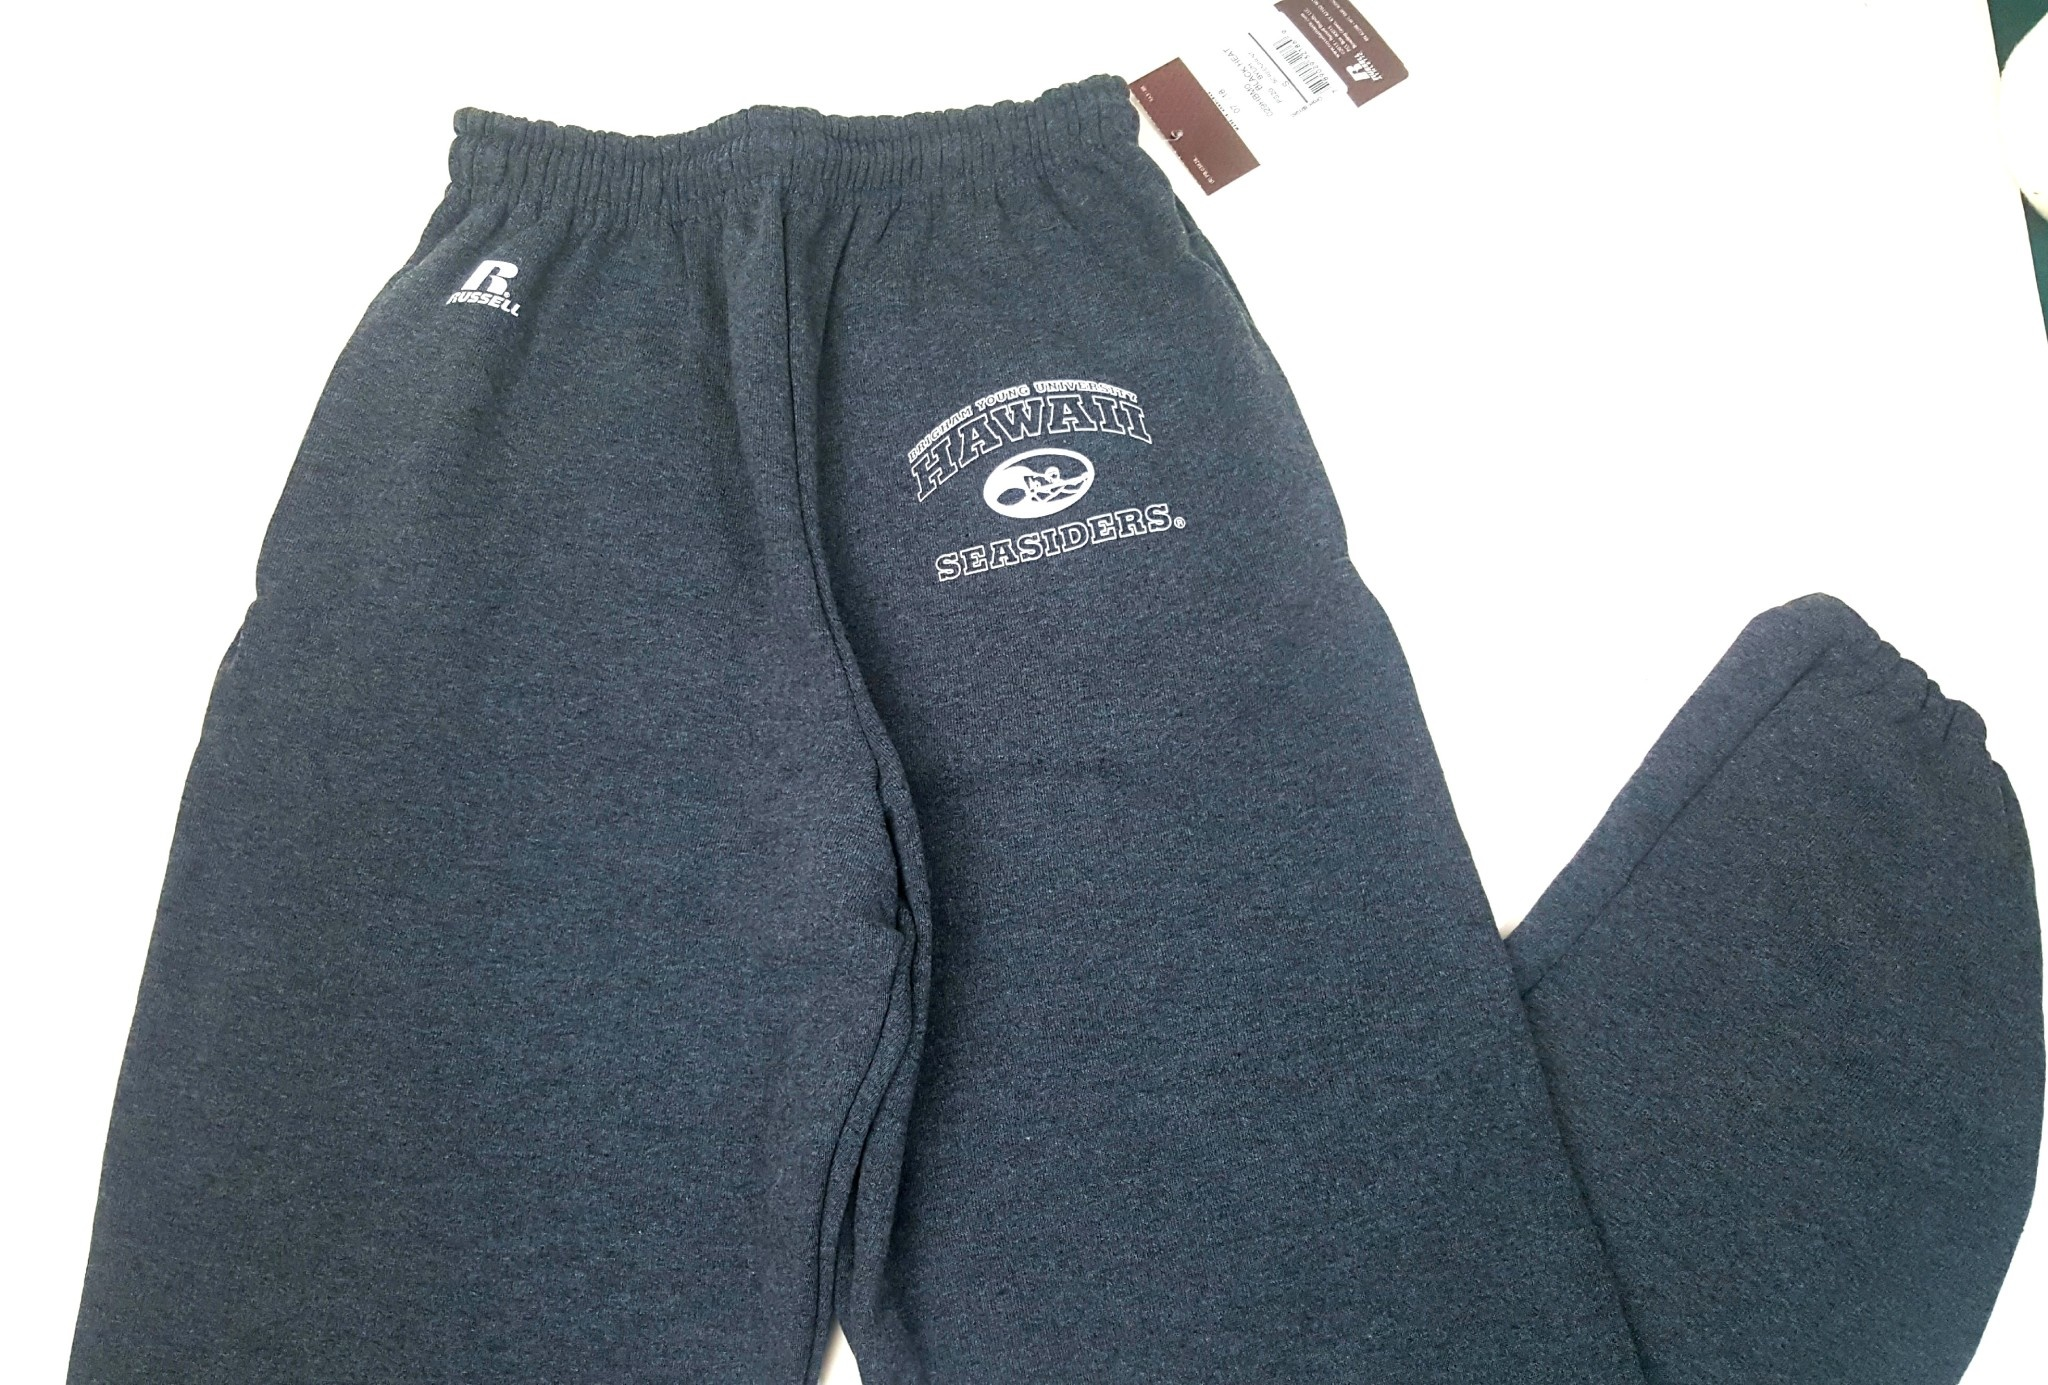 MENS PCKT SEASIDERS SWEATPANTS